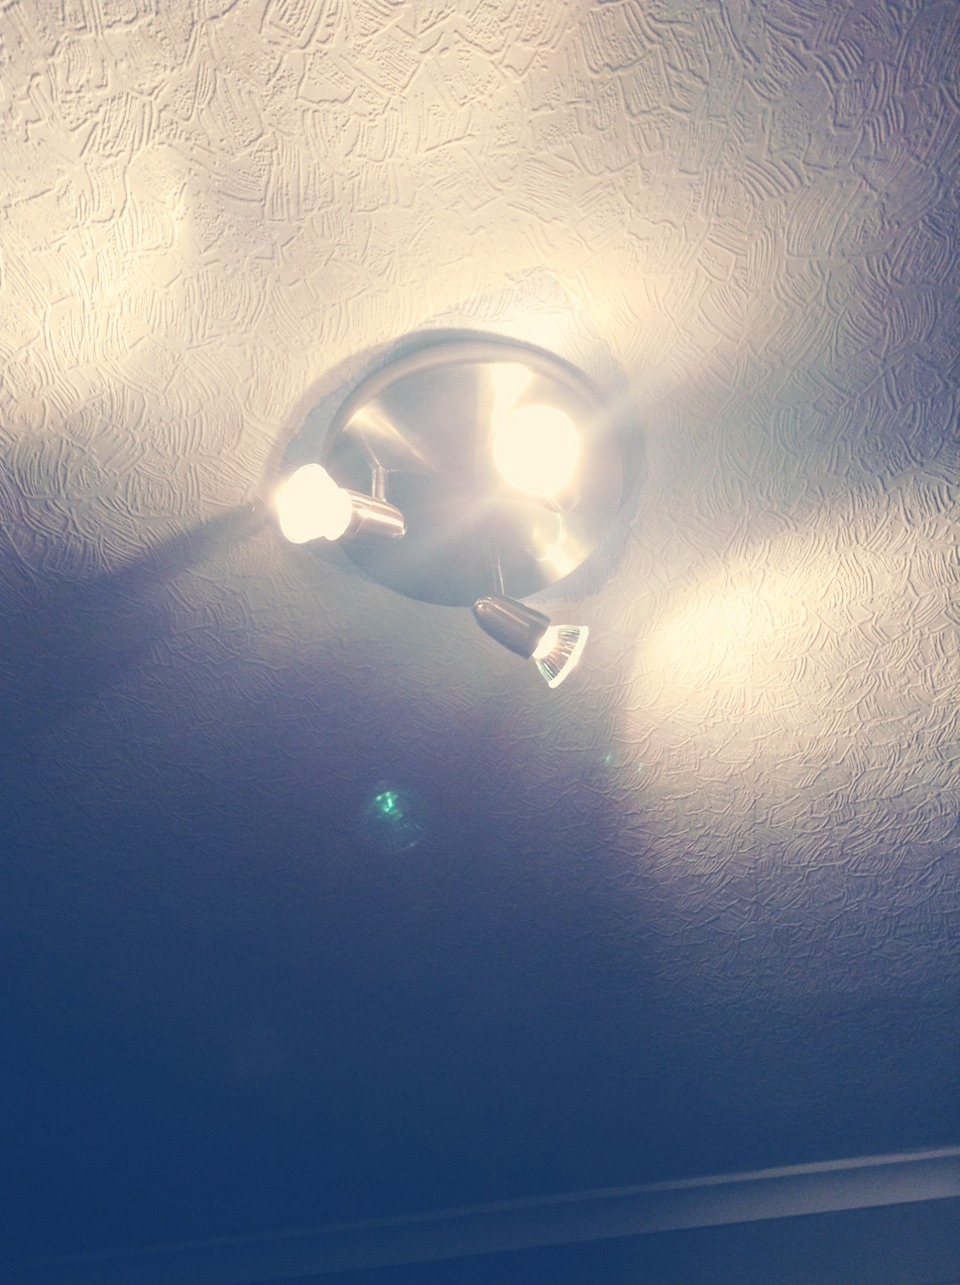 Sometimes normal lighting can be too distracting or uncomforting.. Especially if you're trying to unwind..